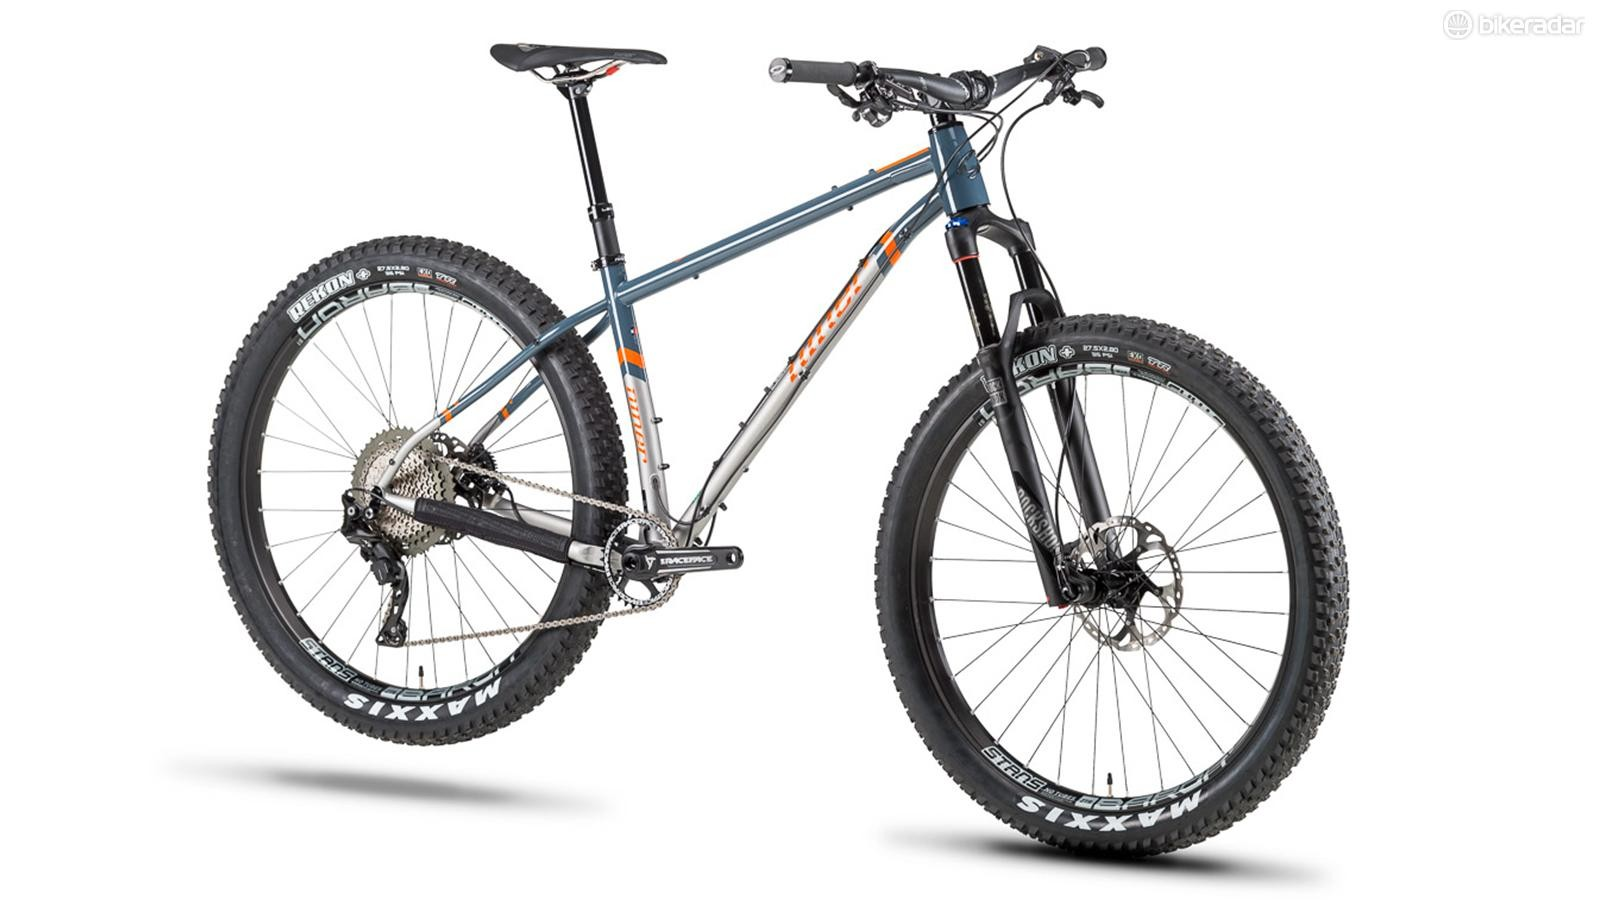 Niner's updated SIR 9 blends elements of the ROS 9 to make it more capable